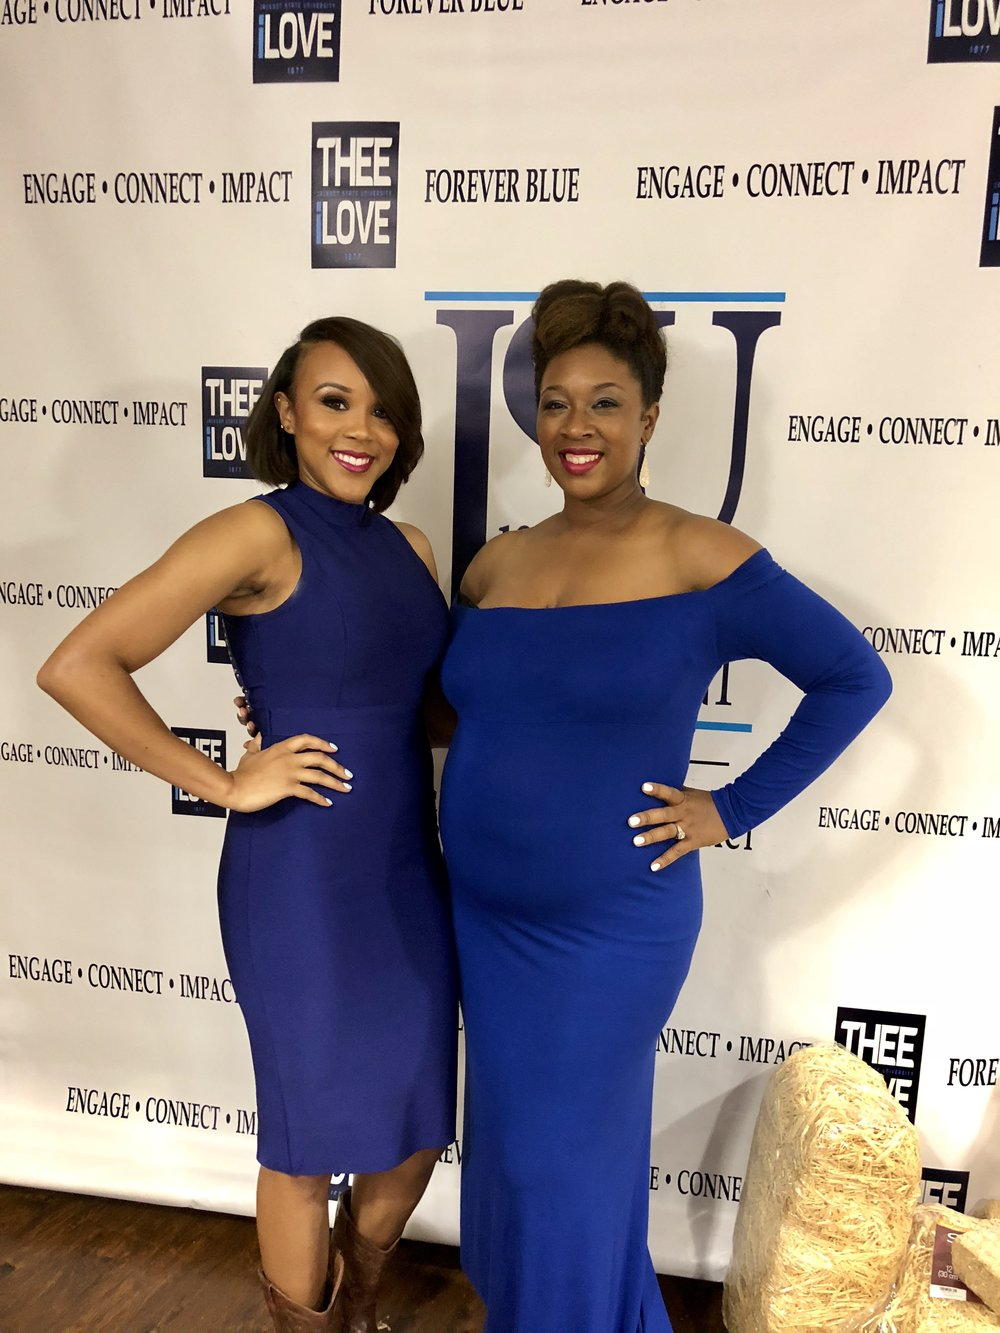 Charne' and the Host, Kiana Day Williams.